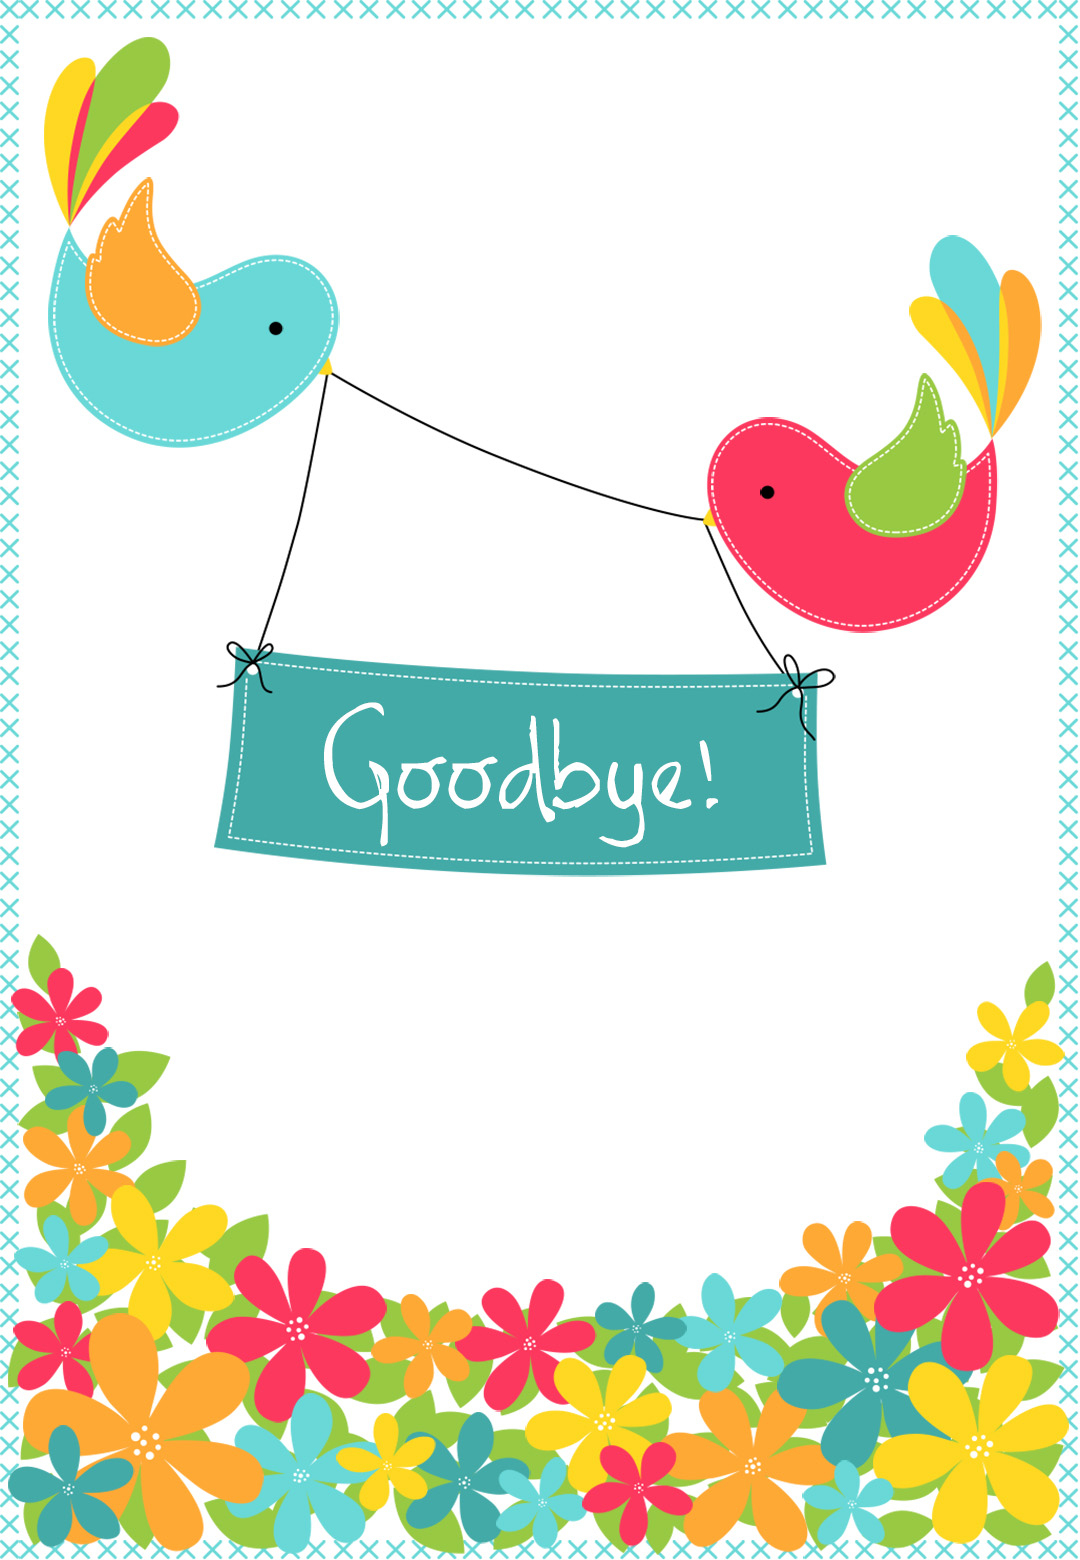 Goodbye From Your Colleagues - Free Good Luck Card | Greetings Island - Free Printable We Will Miss You Greeting Cards